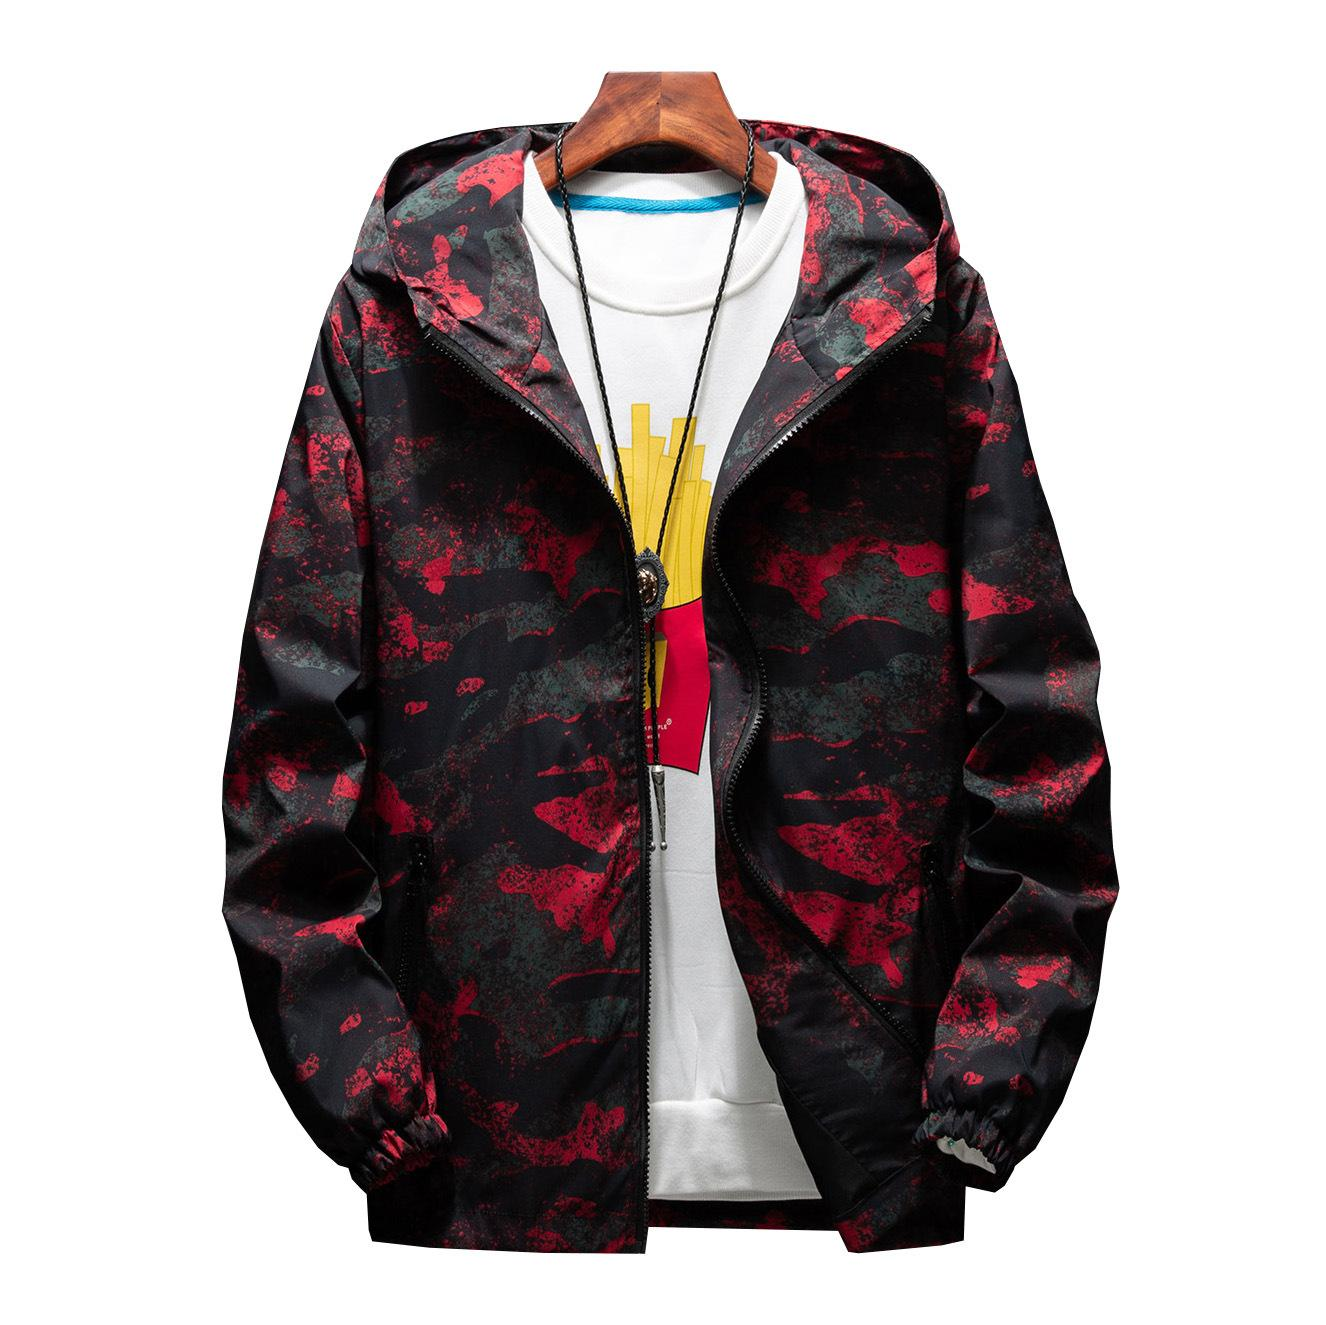 Hot Selling Men Fashion Camouflage Jacket Spring Summer Autumn Tide Male Hooded Thin Sunscreen Coat Wholesale M-7XL